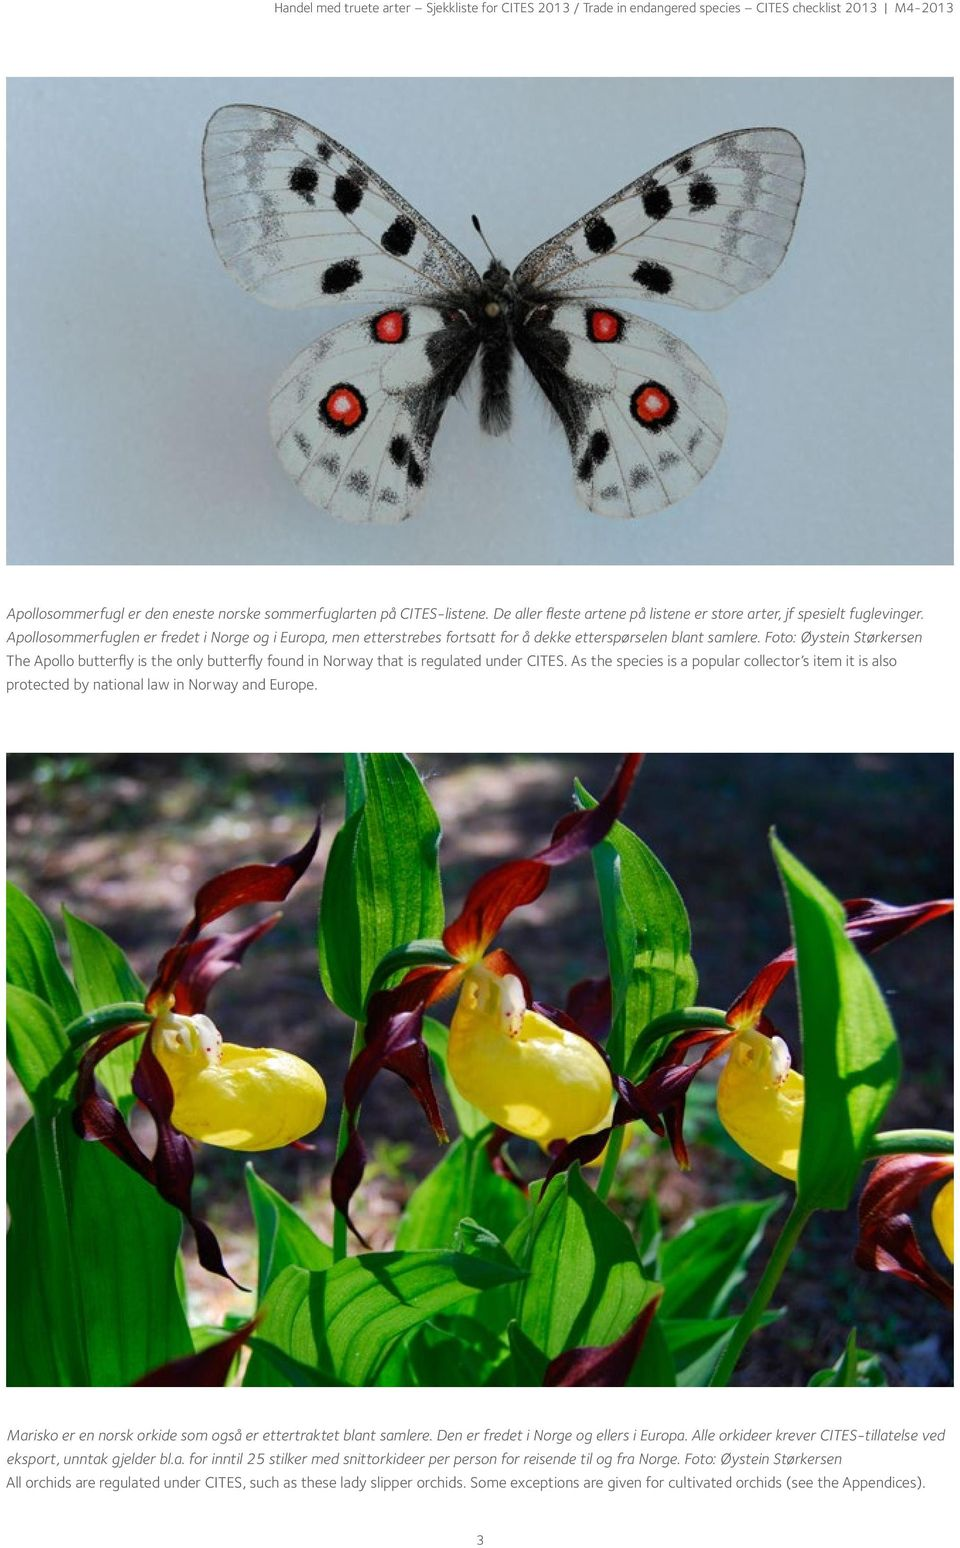 Foto: Øystein Størkersen The Apollo butterfly is the only butterfly found in Norway that is regulated under CITES.